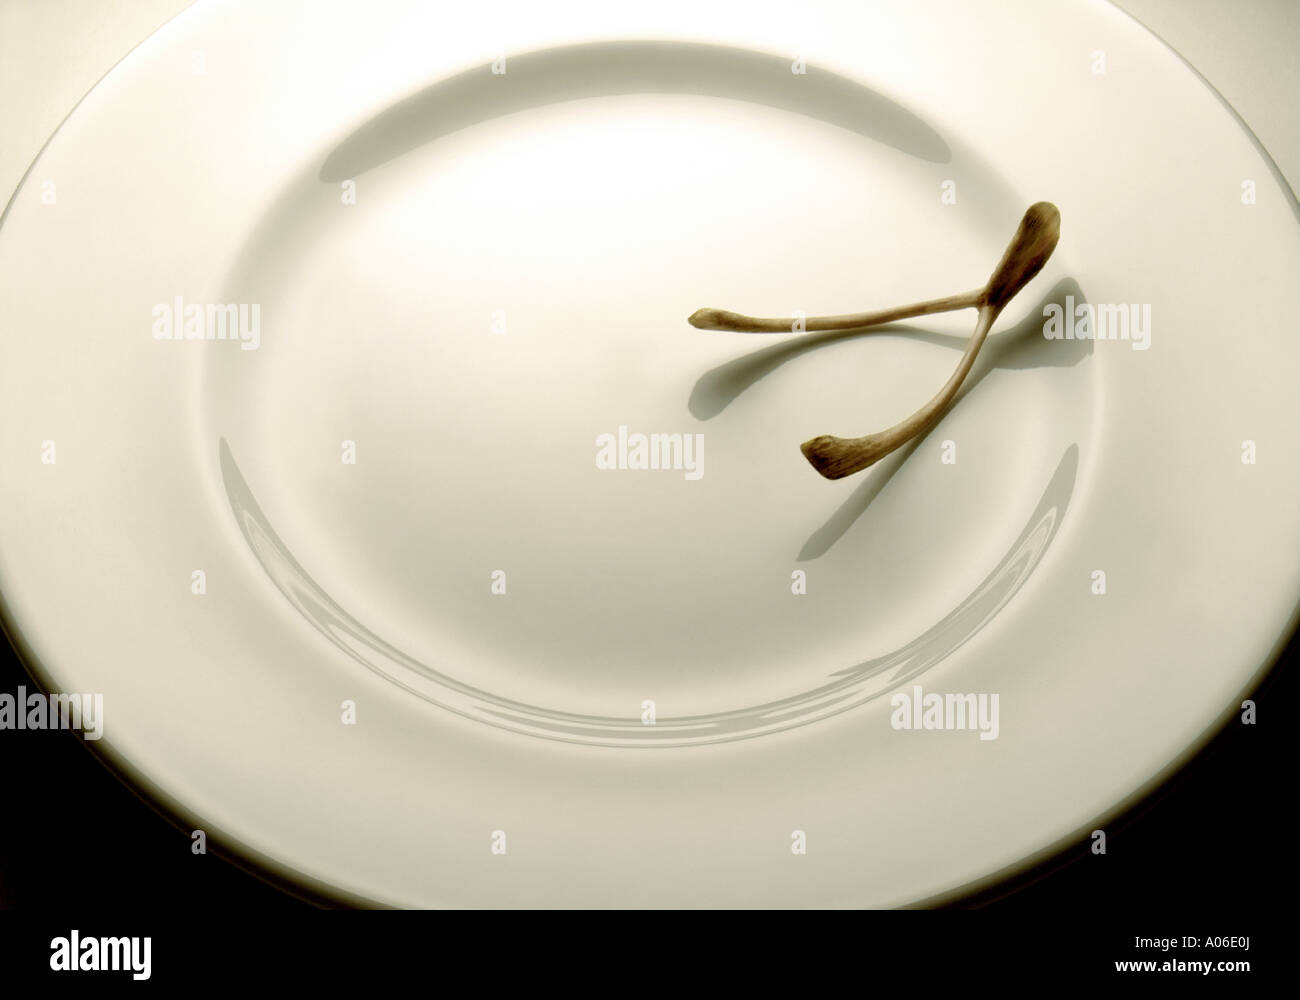 WISHBONE ON A WHITE PLATE - Stock Image